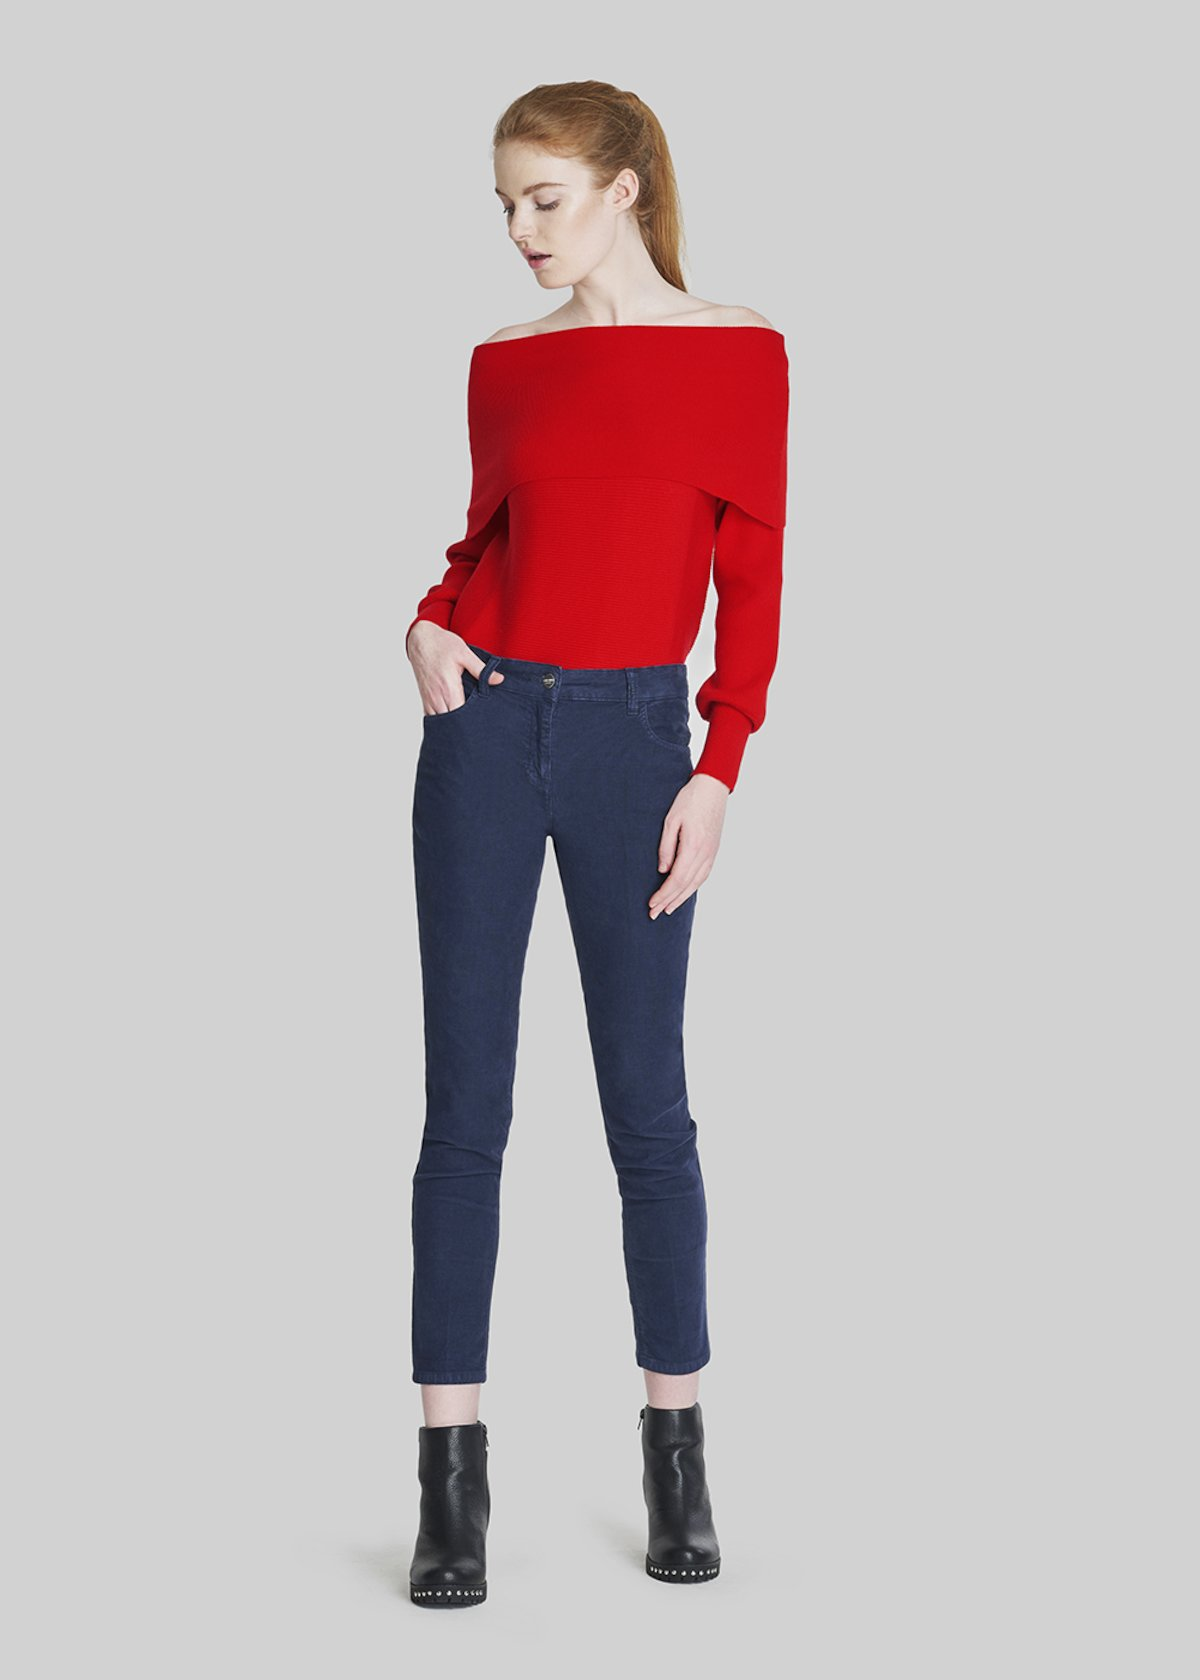 Mirel Boat neck sweater - Taurine - Woman - Category image